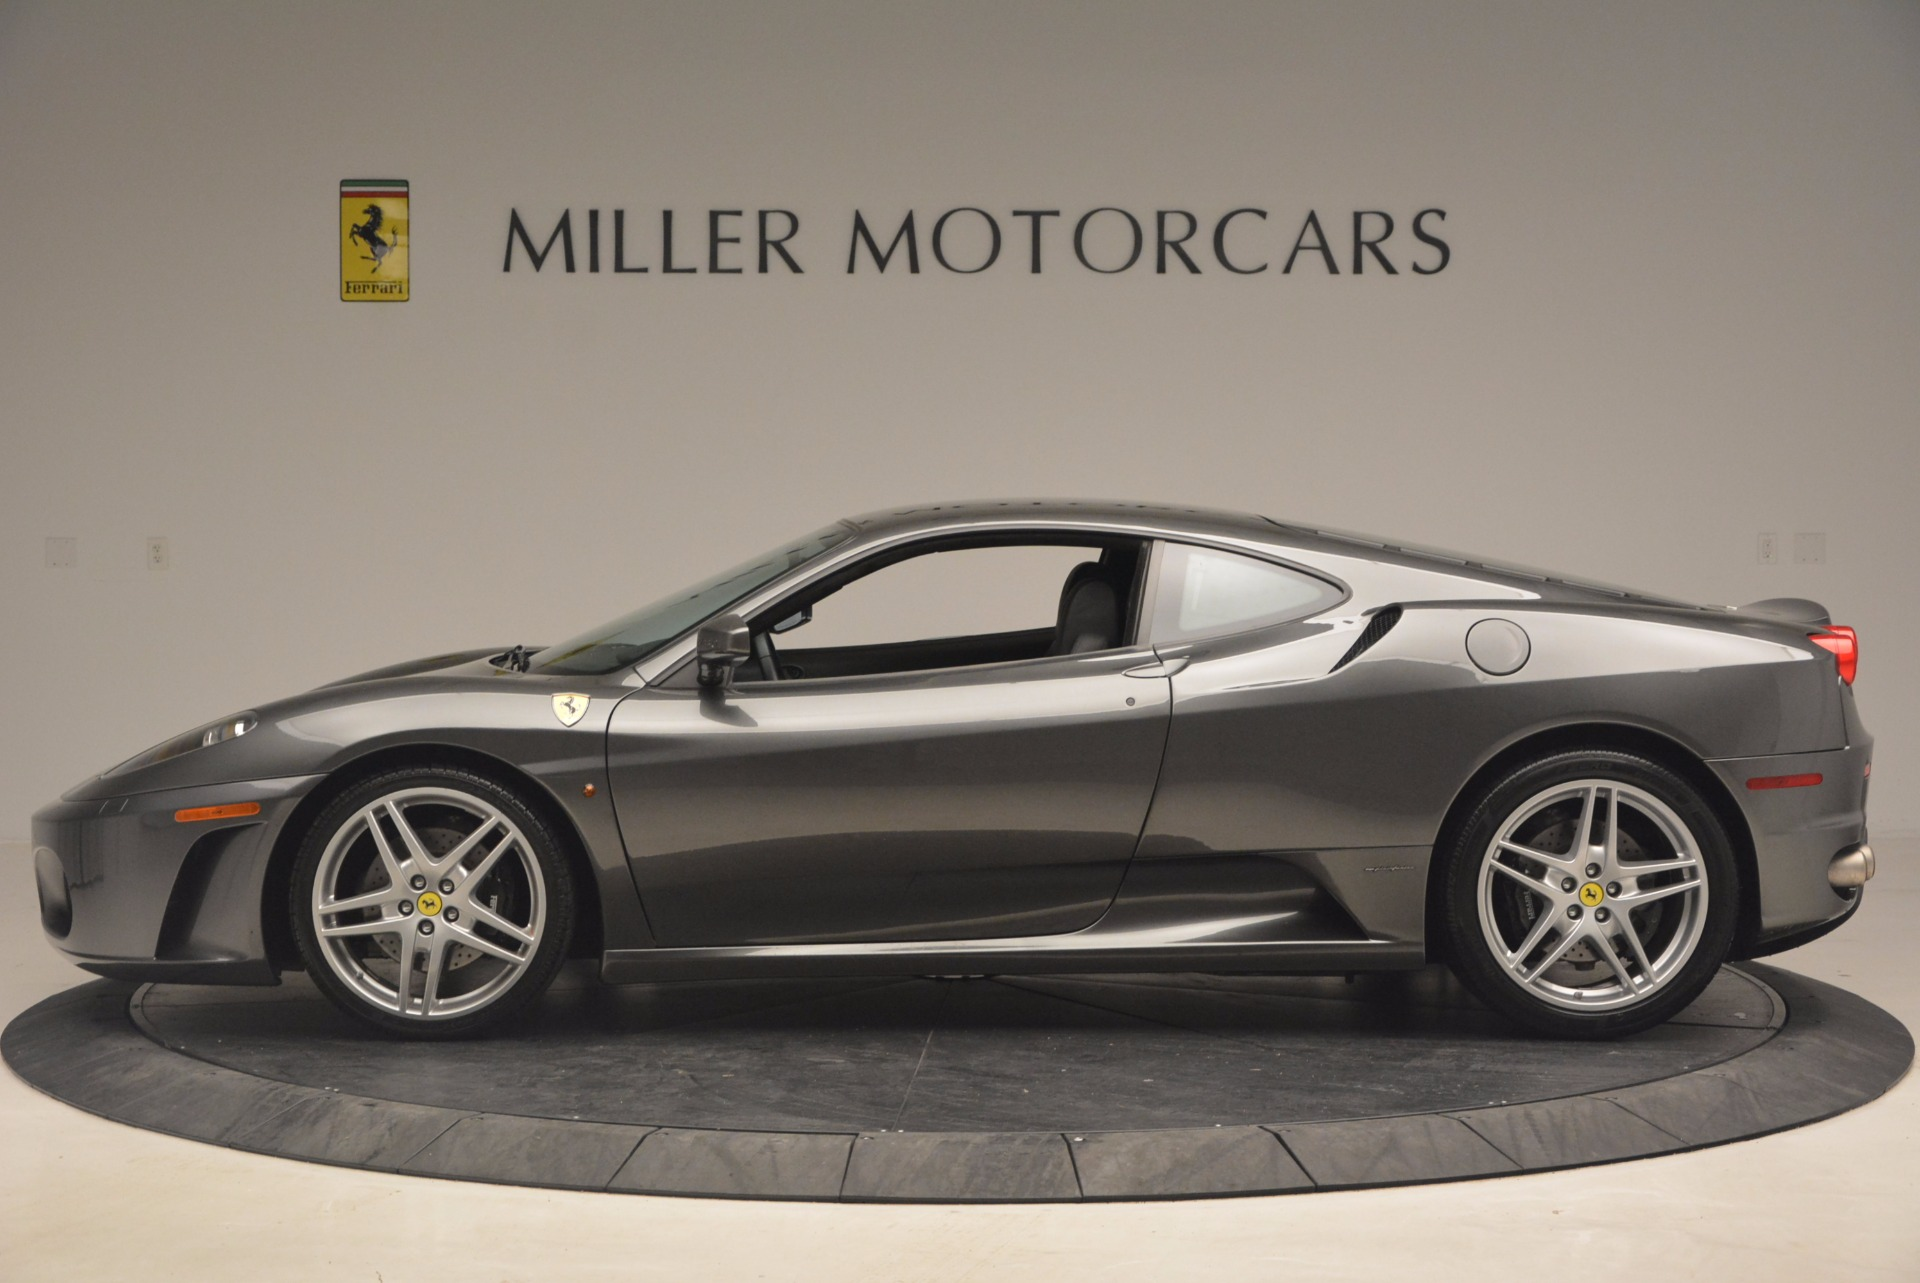 Used 2005 Ferrari F430 6-Speed Manual For Sale In Westport, CT 1286_p3